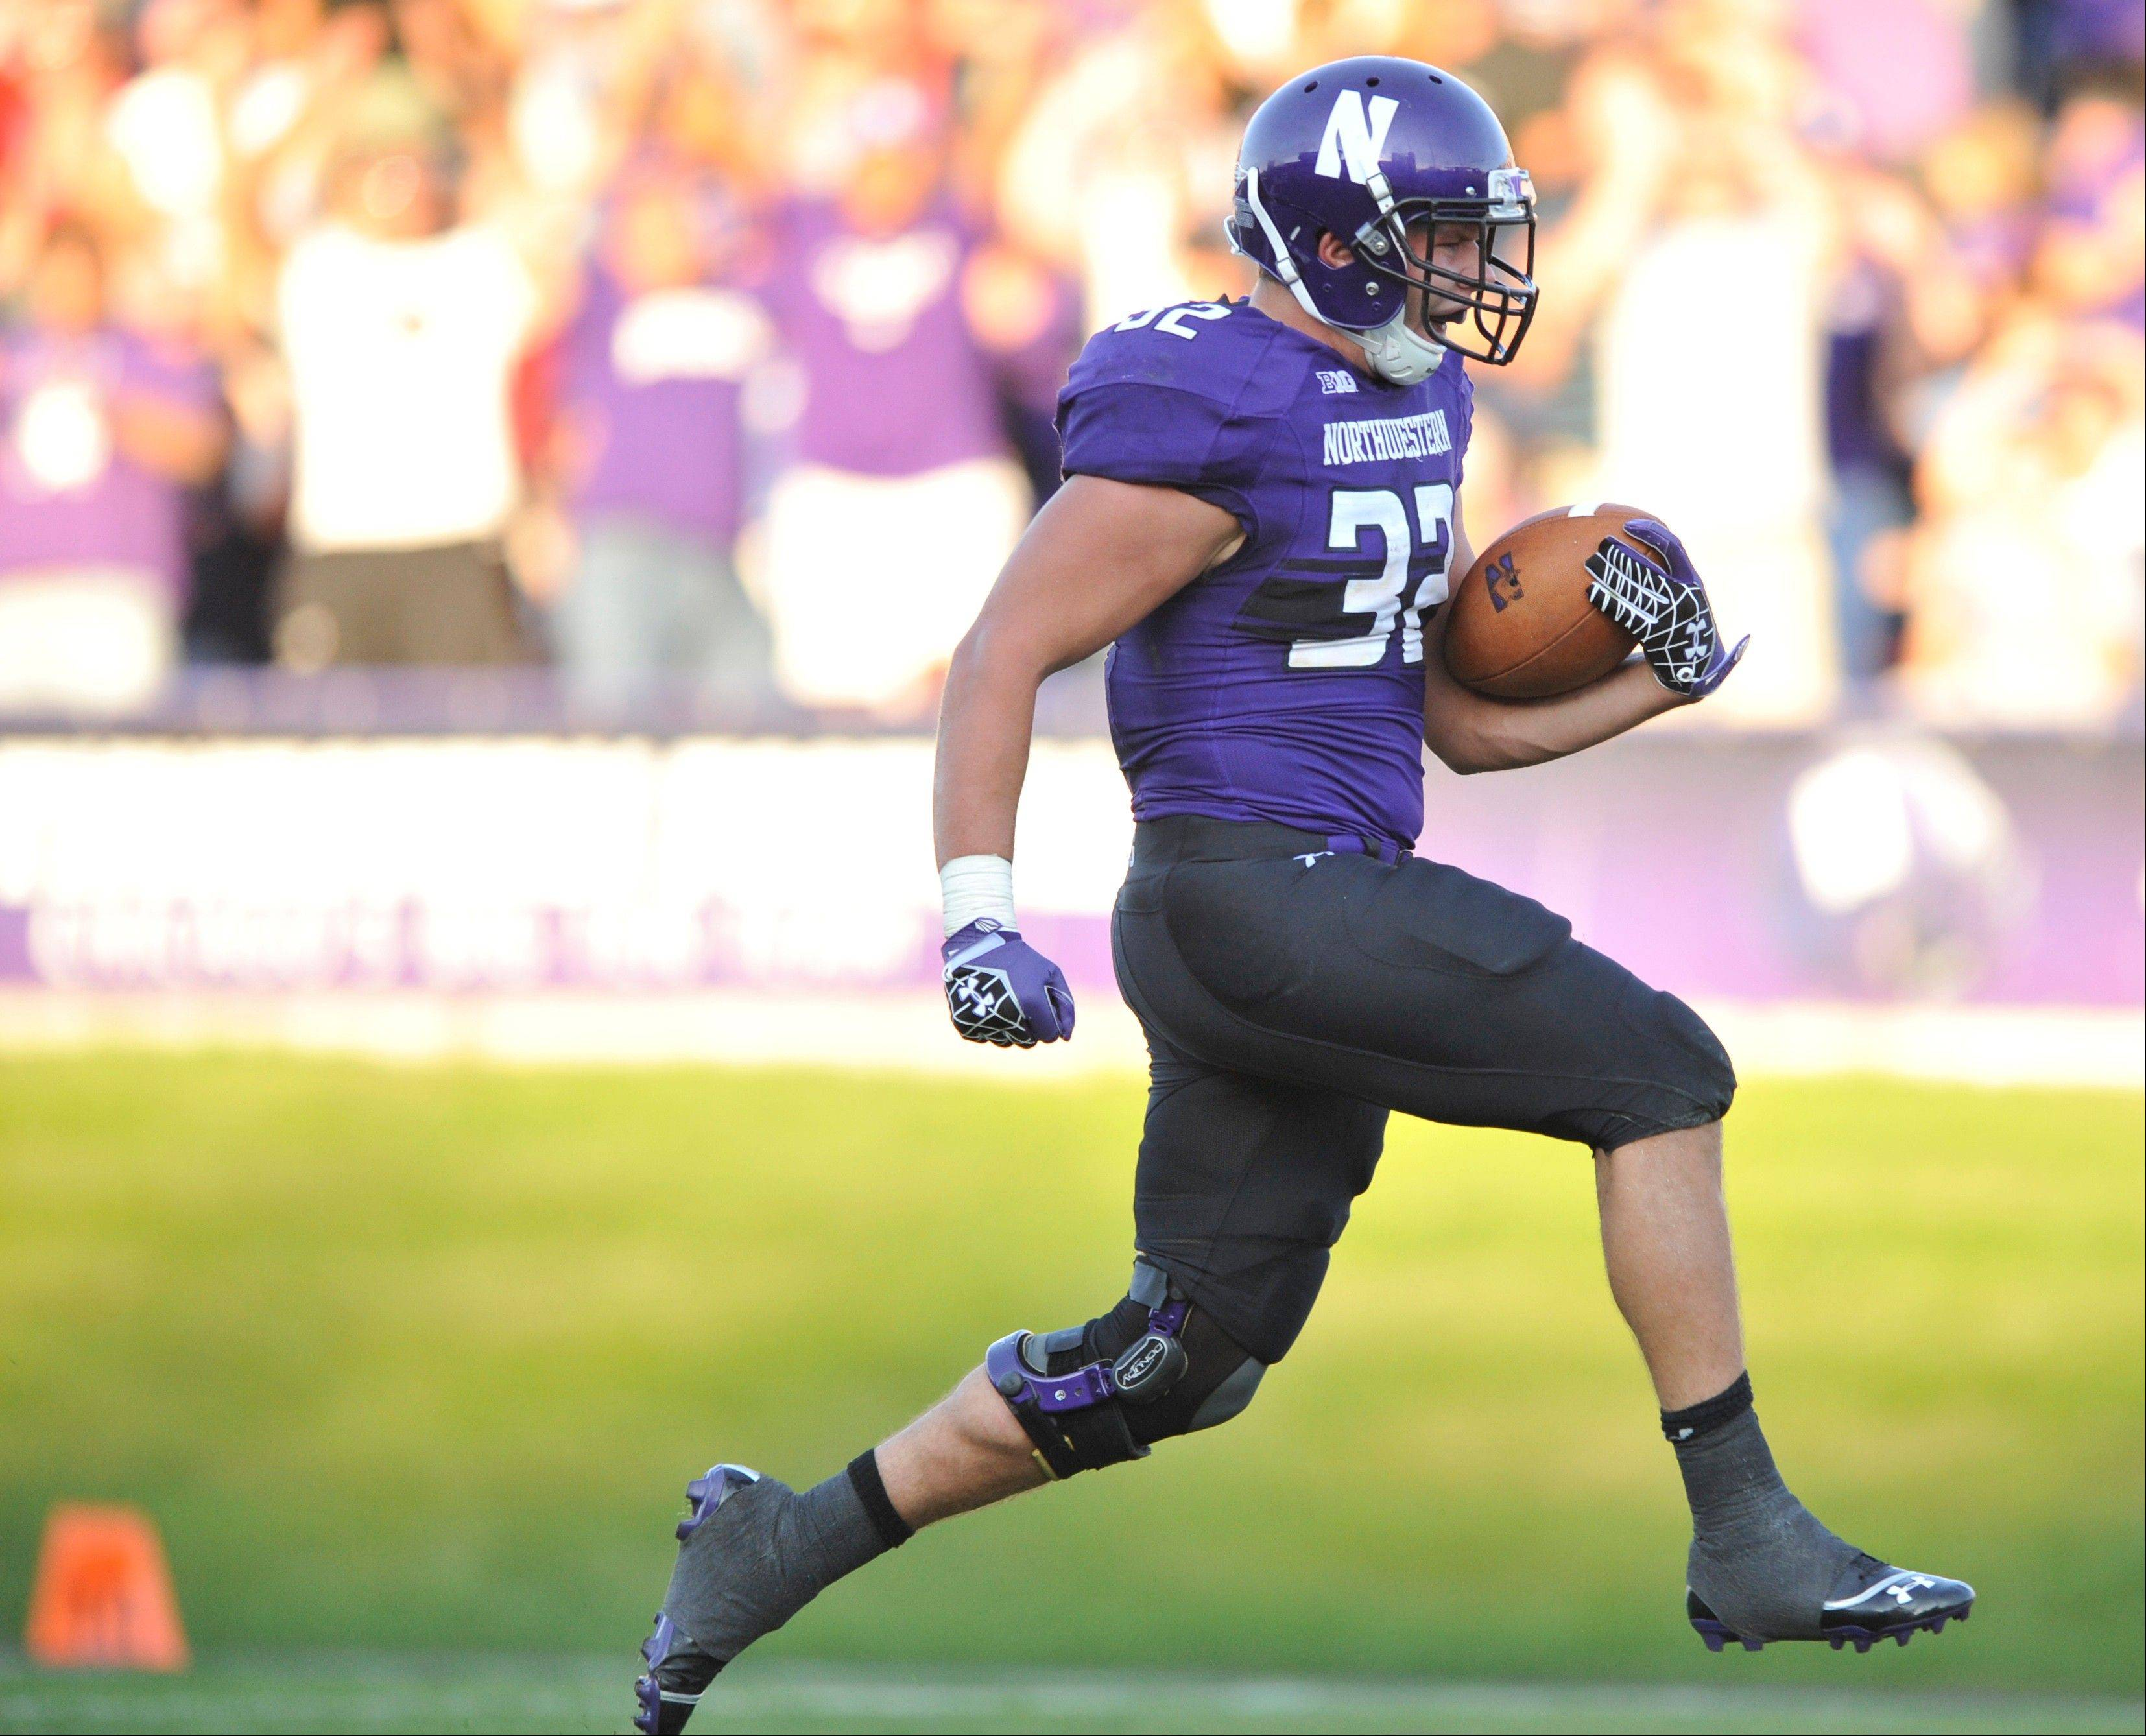 Northwestern running back Mike Trumpy runs for a touchdown Saturday during the fourth quarter against Boston College in Evanston. Northwestern won 22-13.